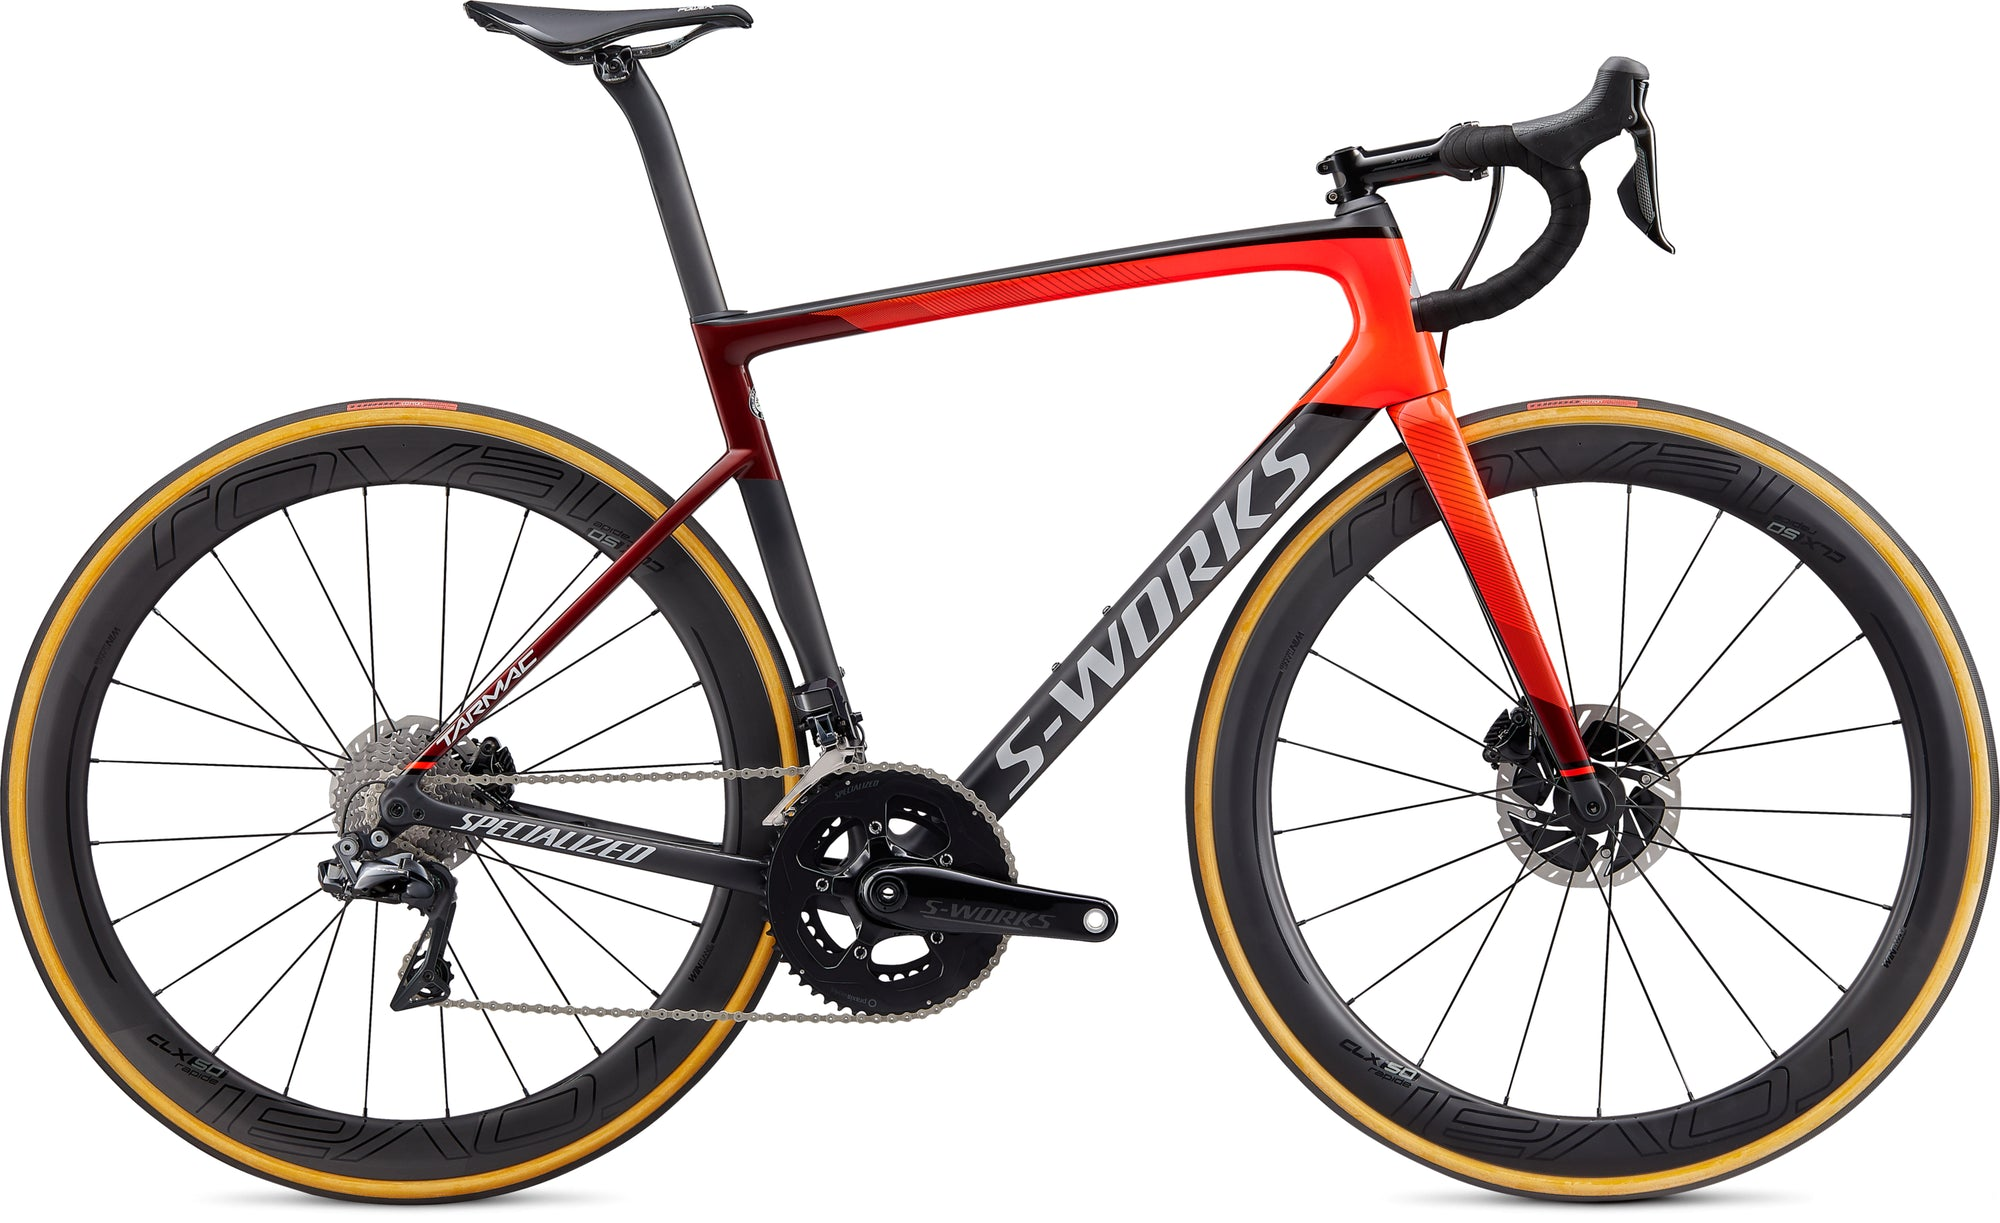 S-Works Tarmac SL6 Disc - Dura Ace Di2